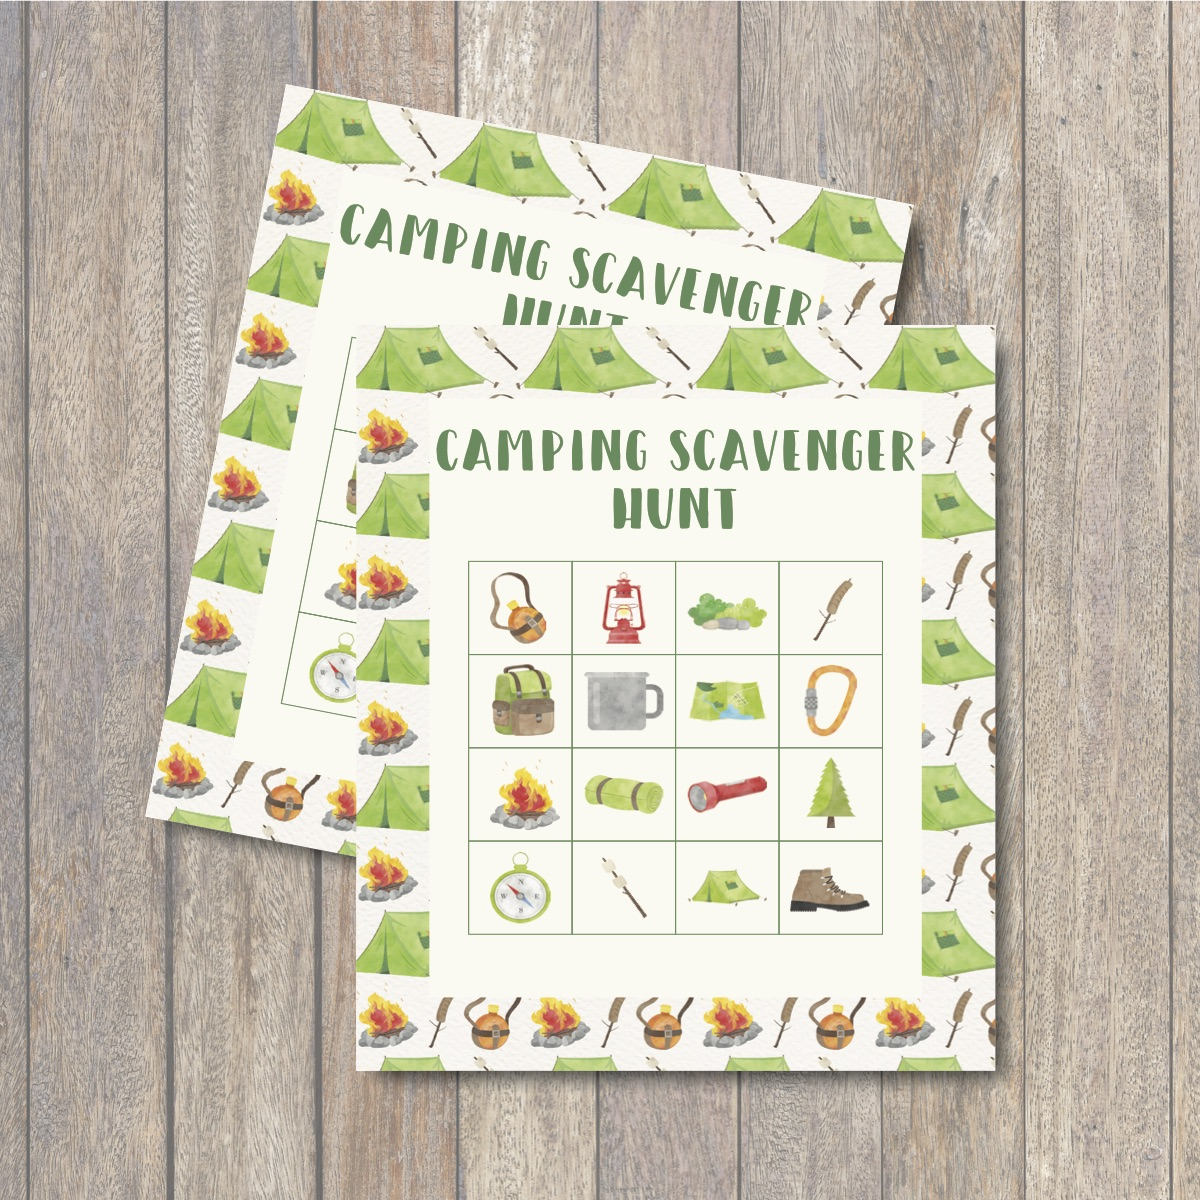 graphic relating to Camping Scavenger Hunt Printable named Tenting Scavenger Hunt Printable - Each day Occasion Journal